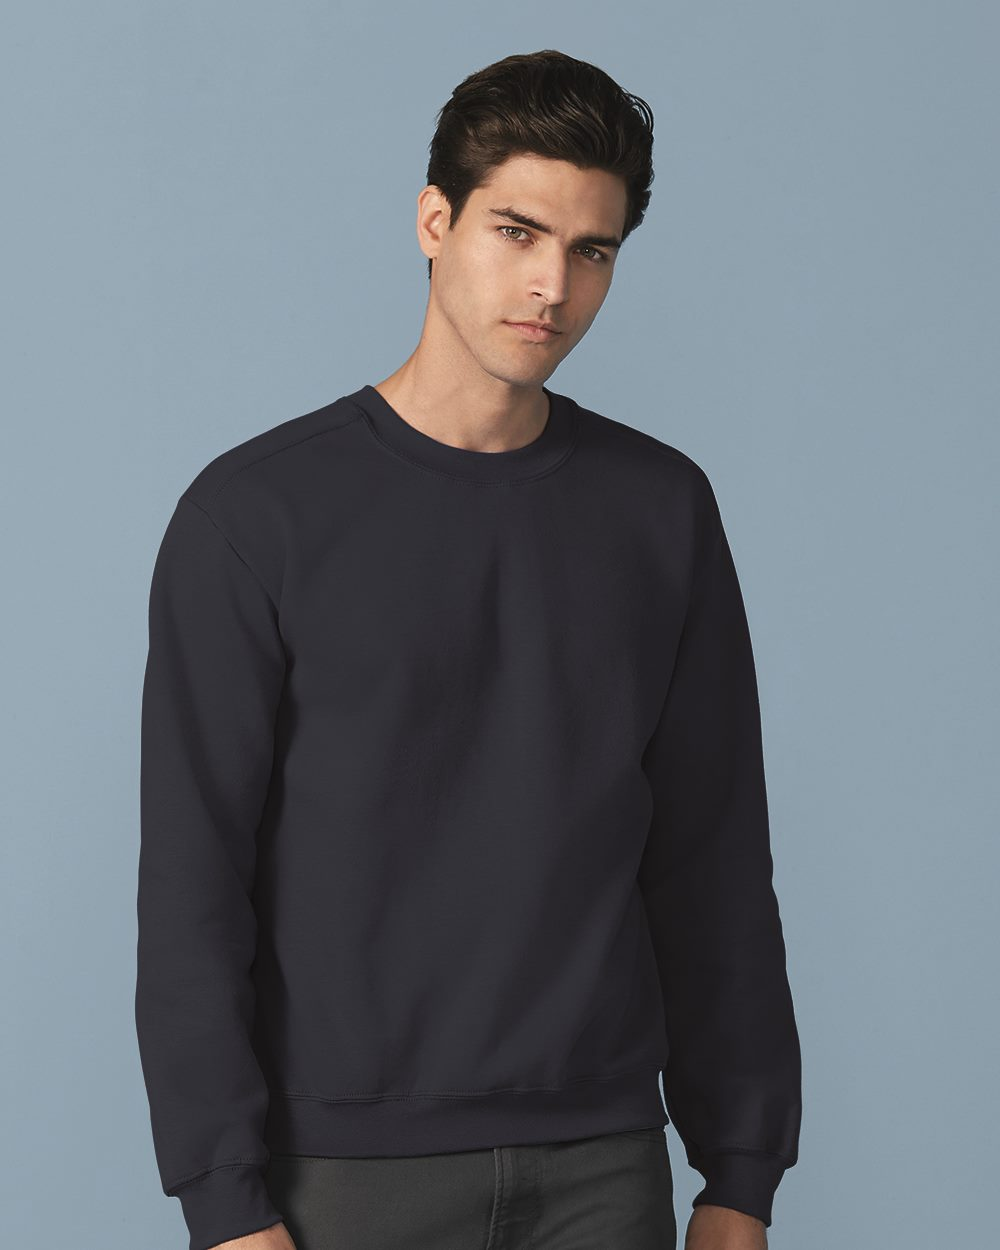 Gildan 92000 - Adult Premium Cotton Crew Neck Sweatshirt